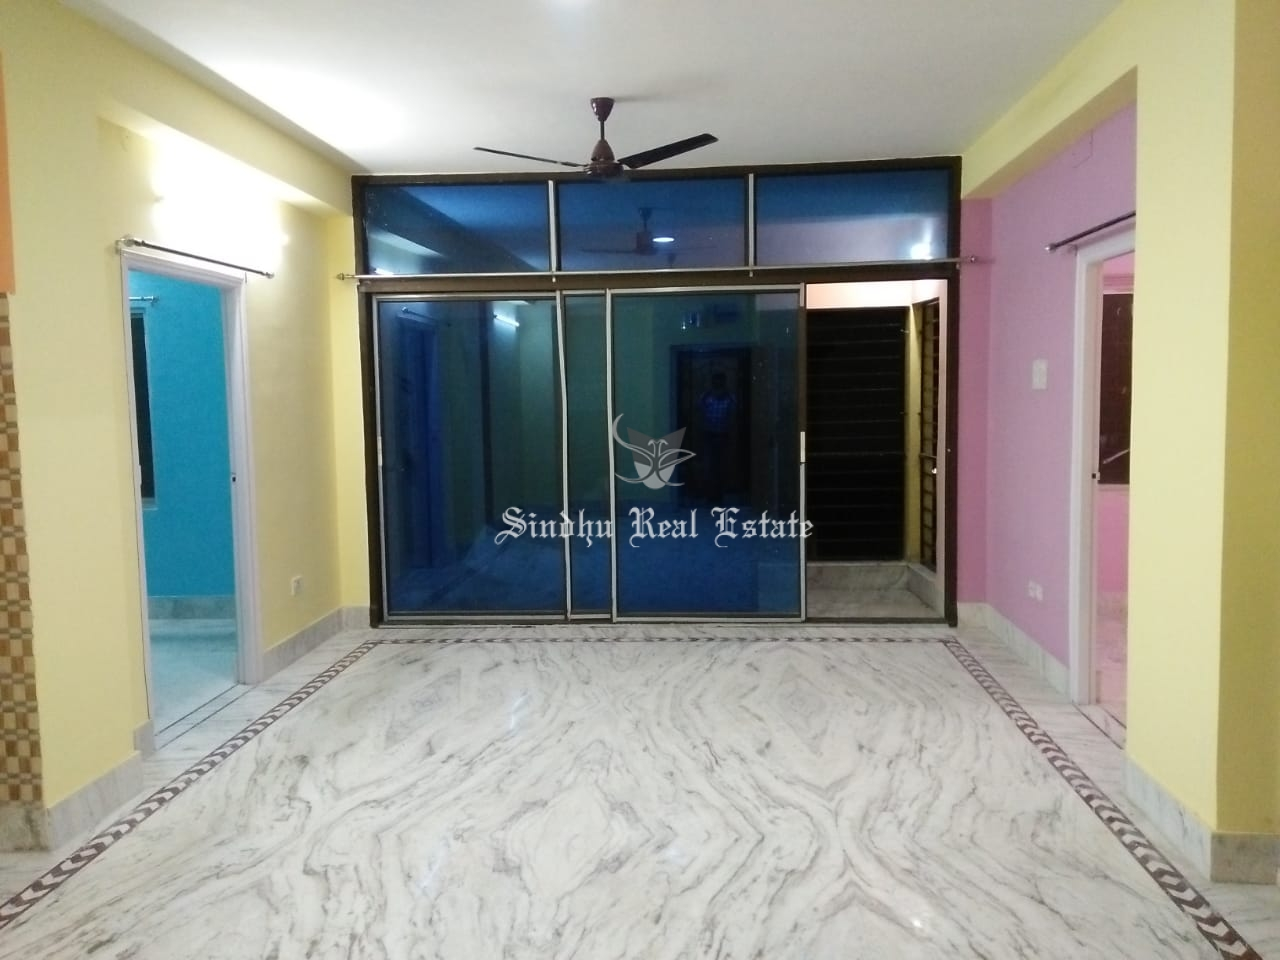 3 BHK residential flat for rent in  New-town action area 1